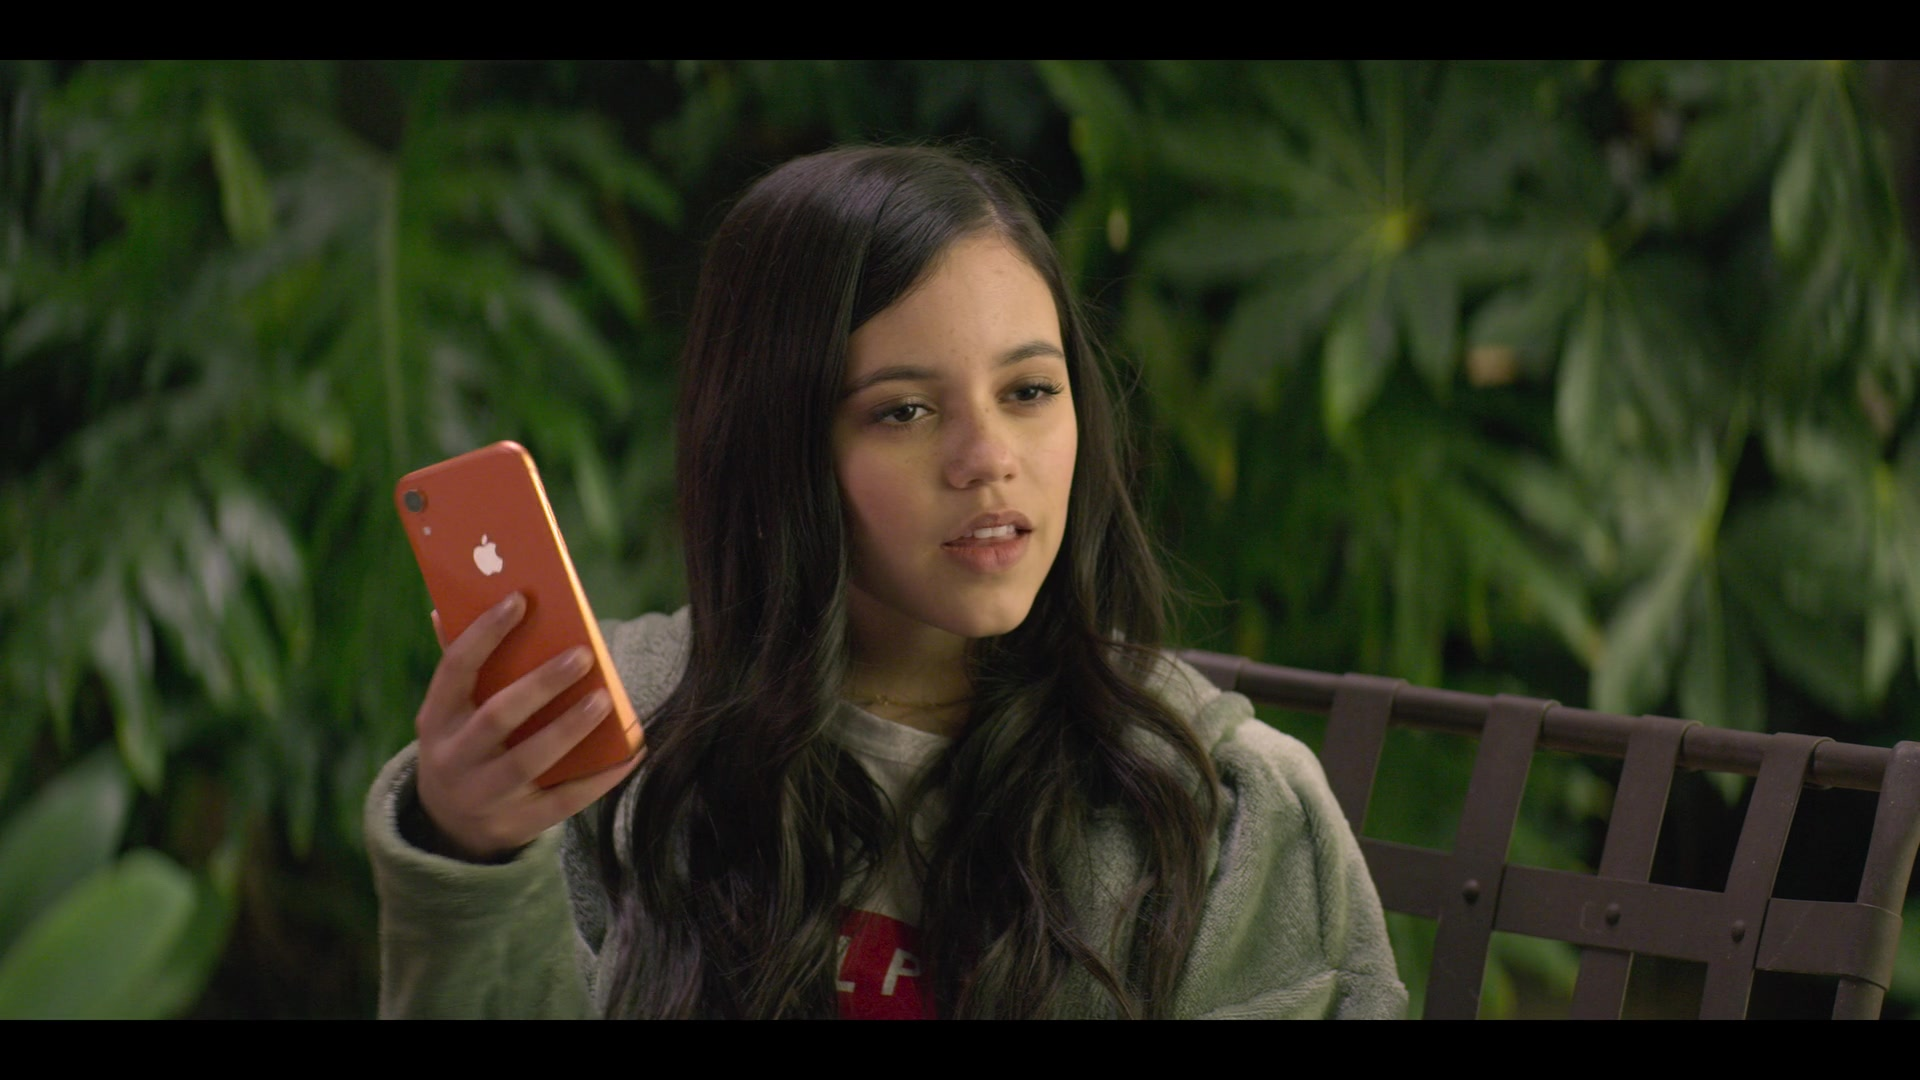 Apple Iphone Smartphone Held By Jenna Ortega As Ellie Alves